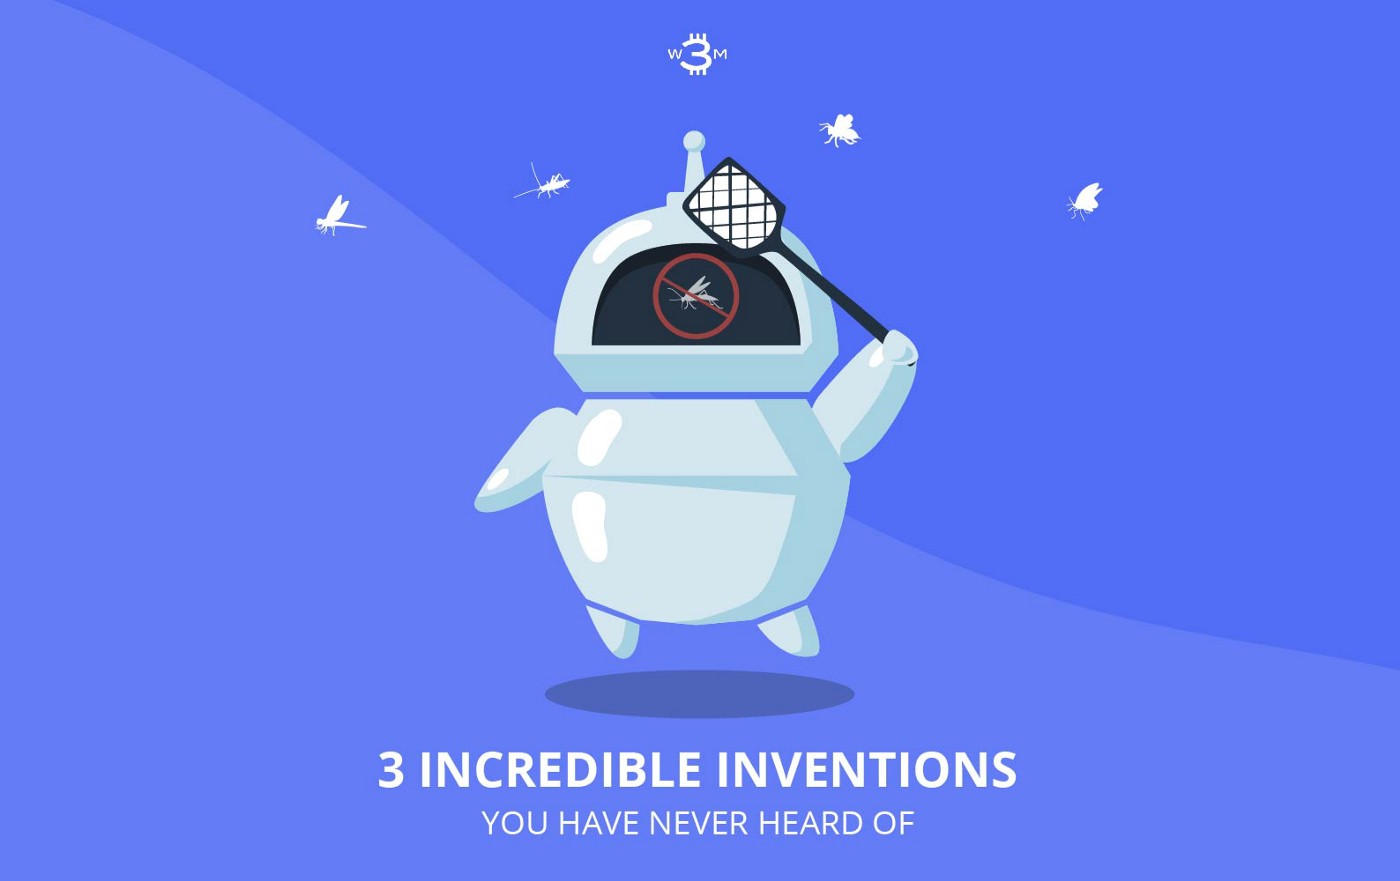 Three Incredible Inventions You Have Never Heard Of